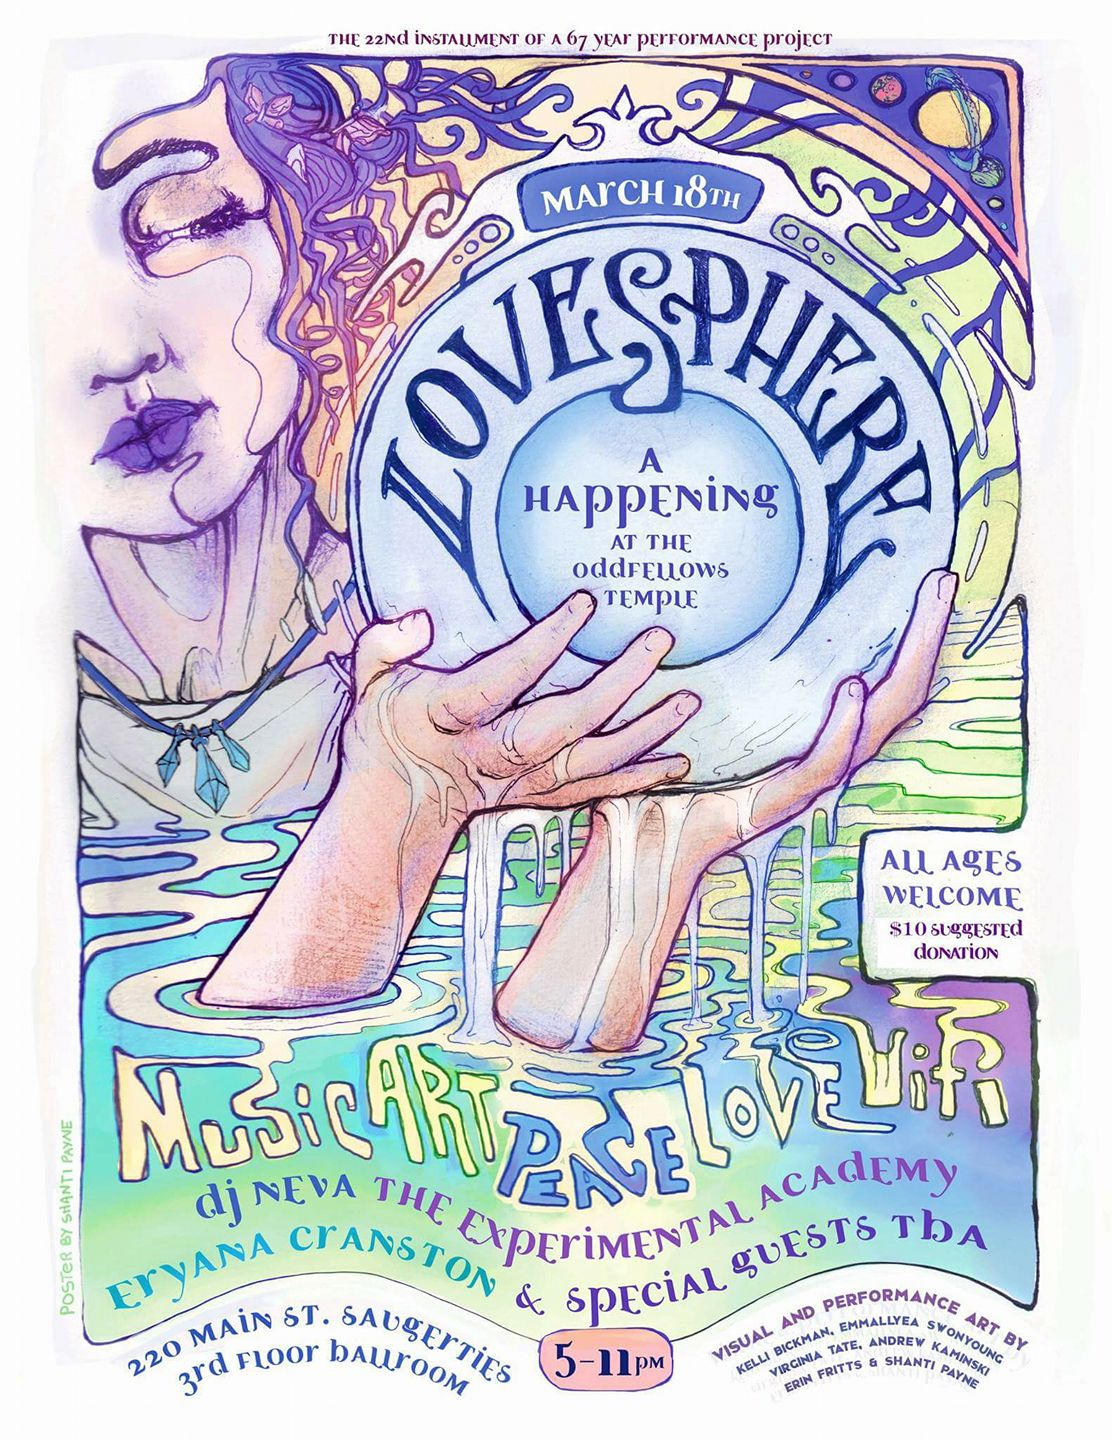 Lovesphere 22 at Odd Fellows' Temple in Saugerties March 18